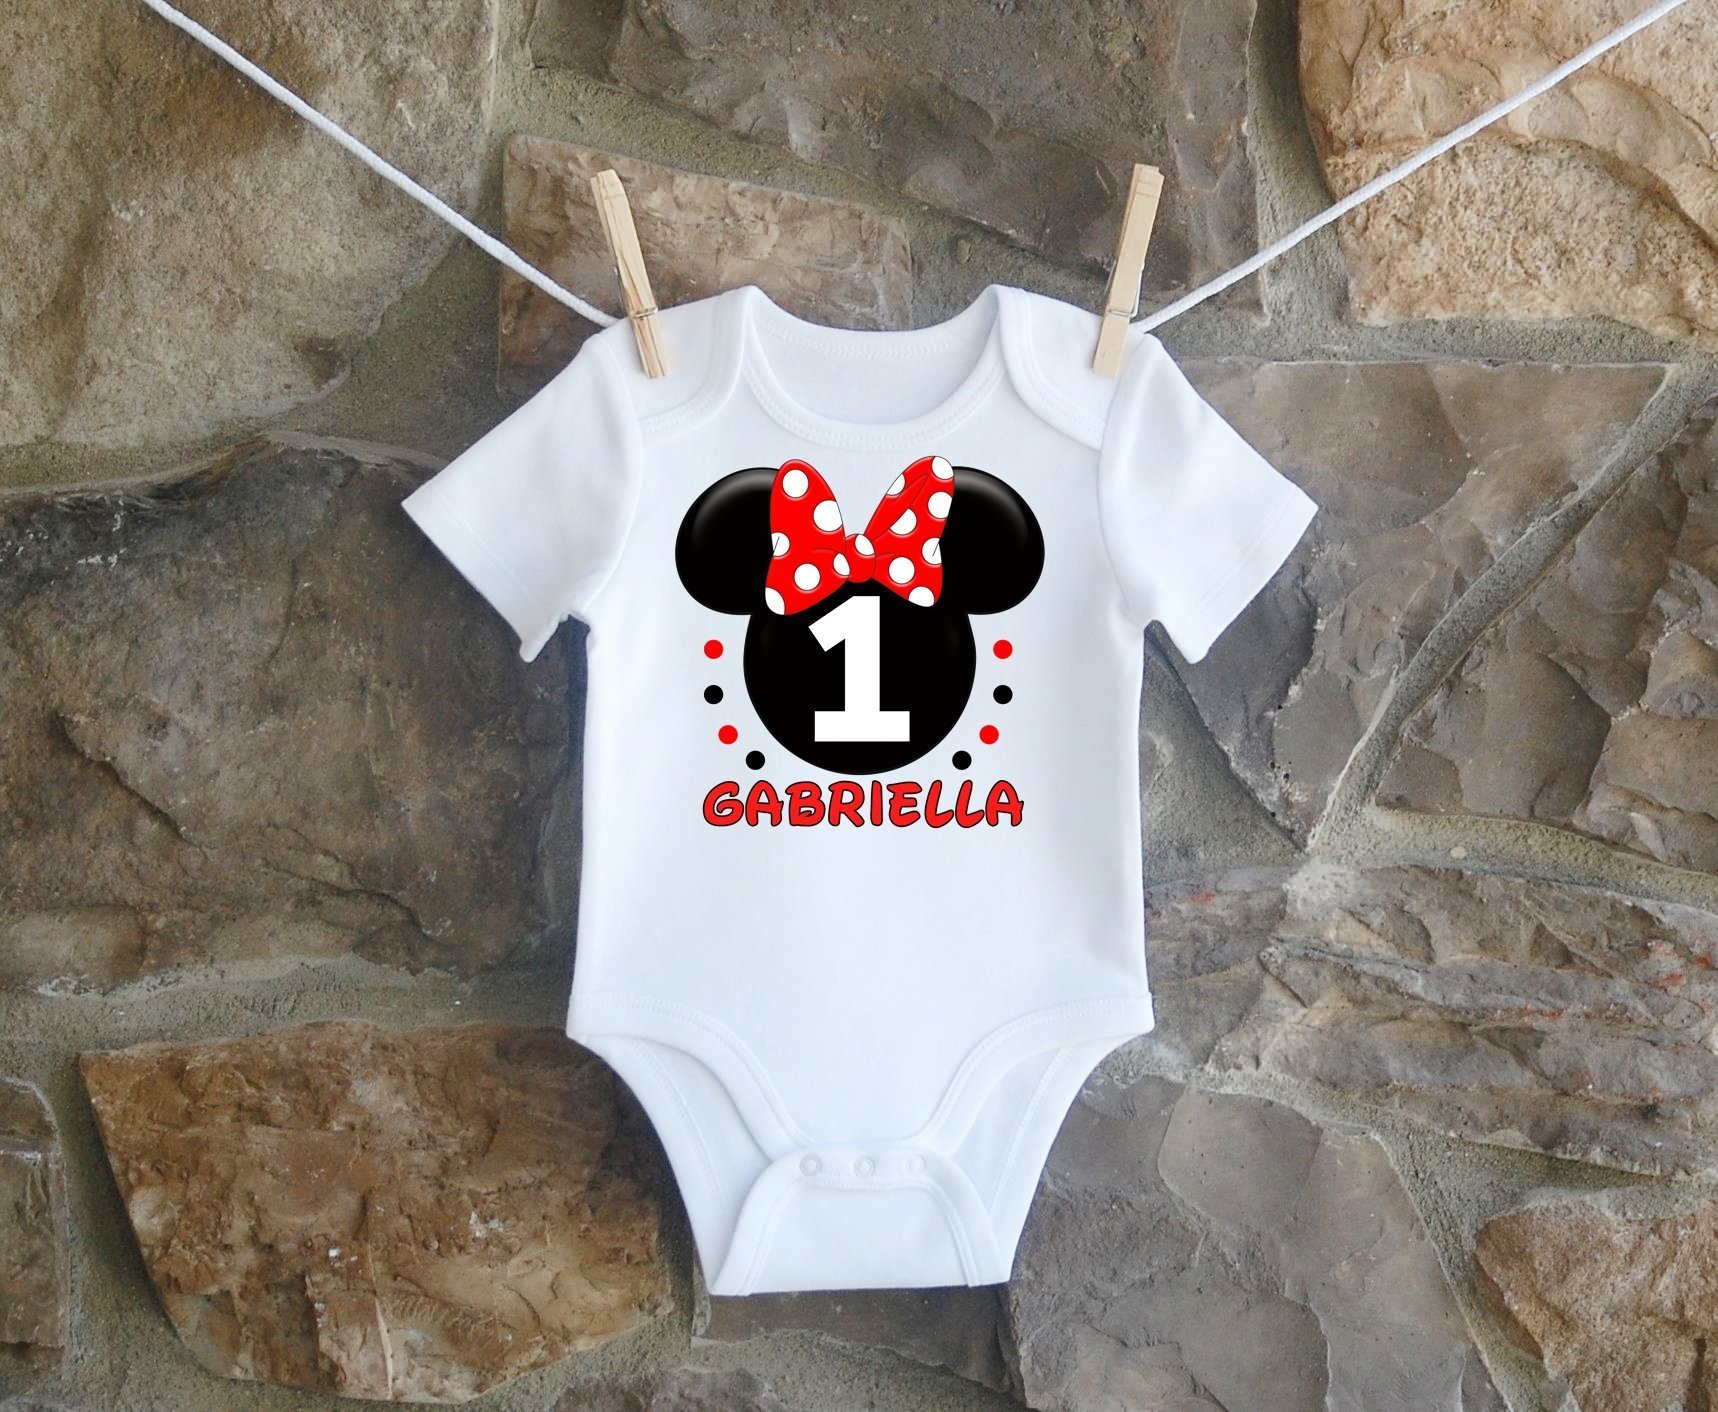 Minnie Mouse Birthday Shirt, Minnie Mouse Birthday Shirt For Girls, Personalized Girls Red Black Minnie Mouse Ears Birthday Shirt, Customized Minnie Mouse Birthday Shirt